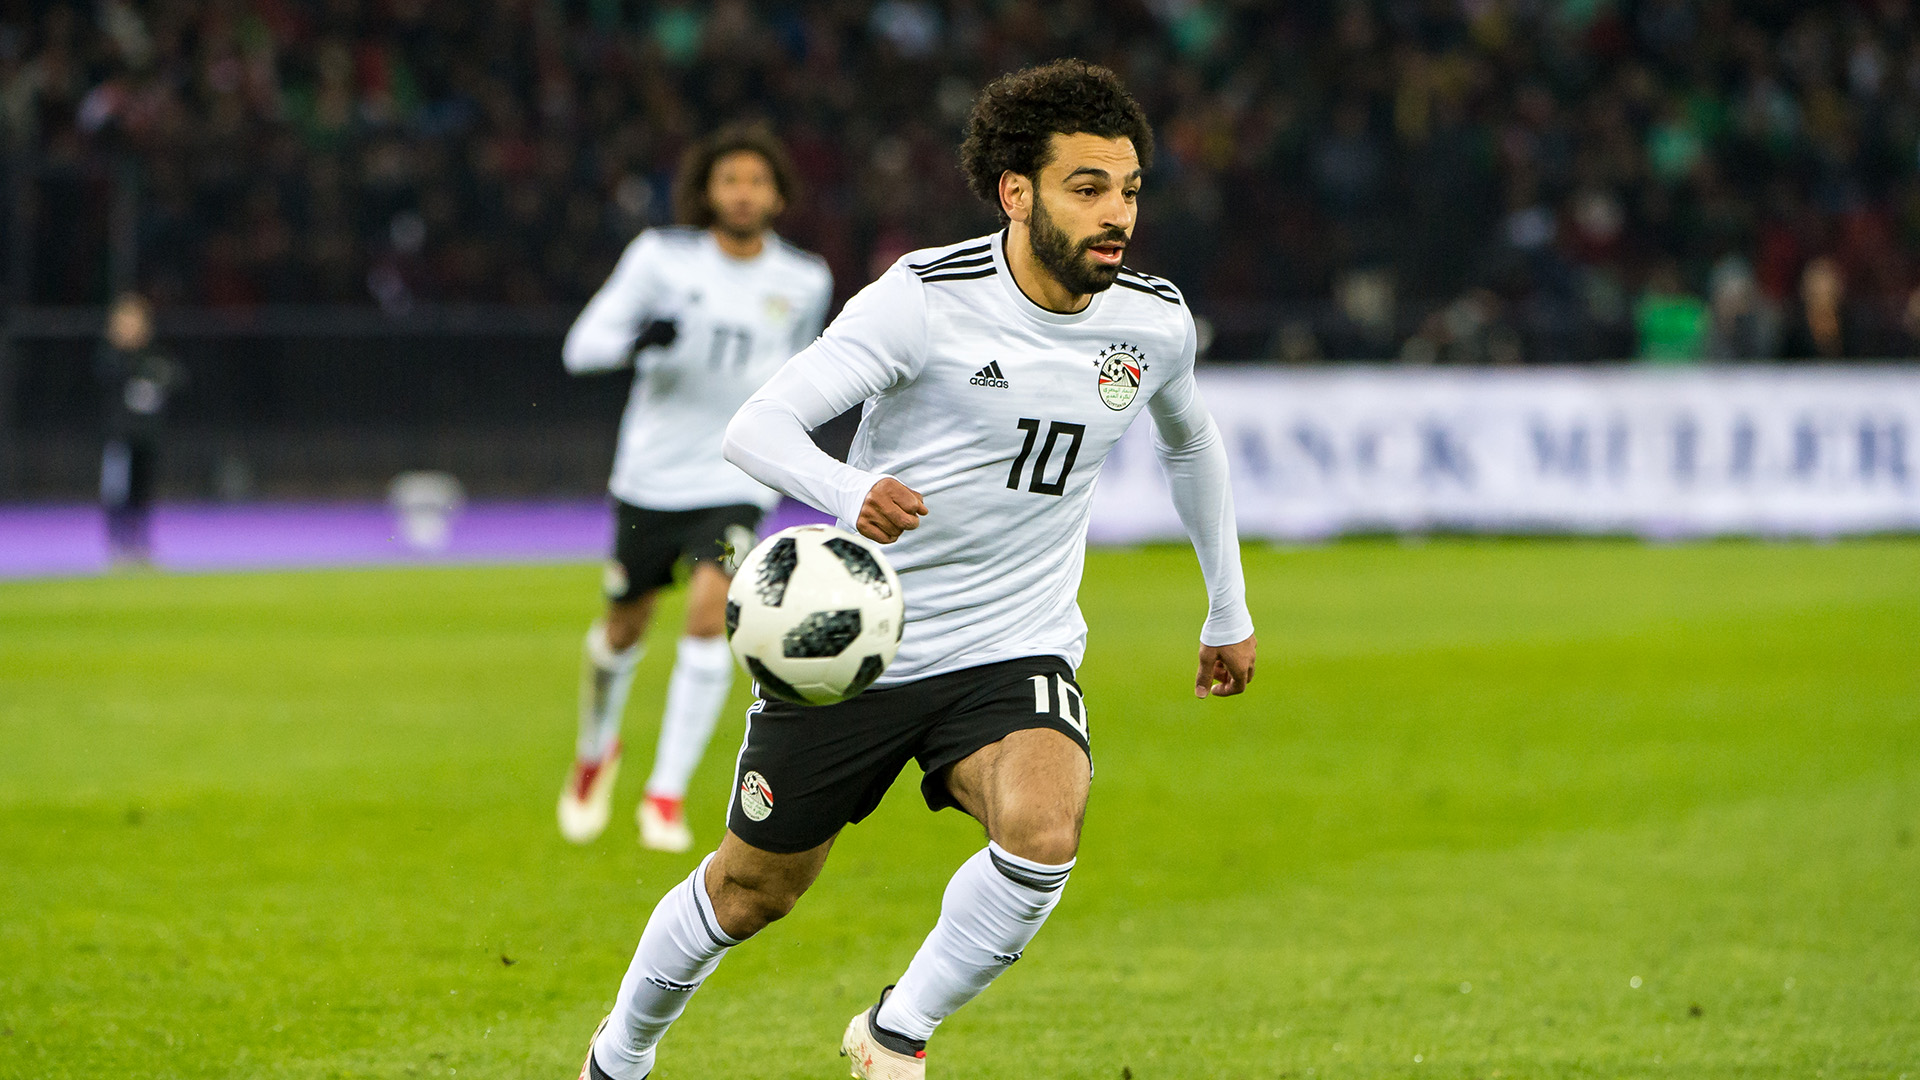 Watch Mo Salah at FIFA World Cup 2018 on TV, online